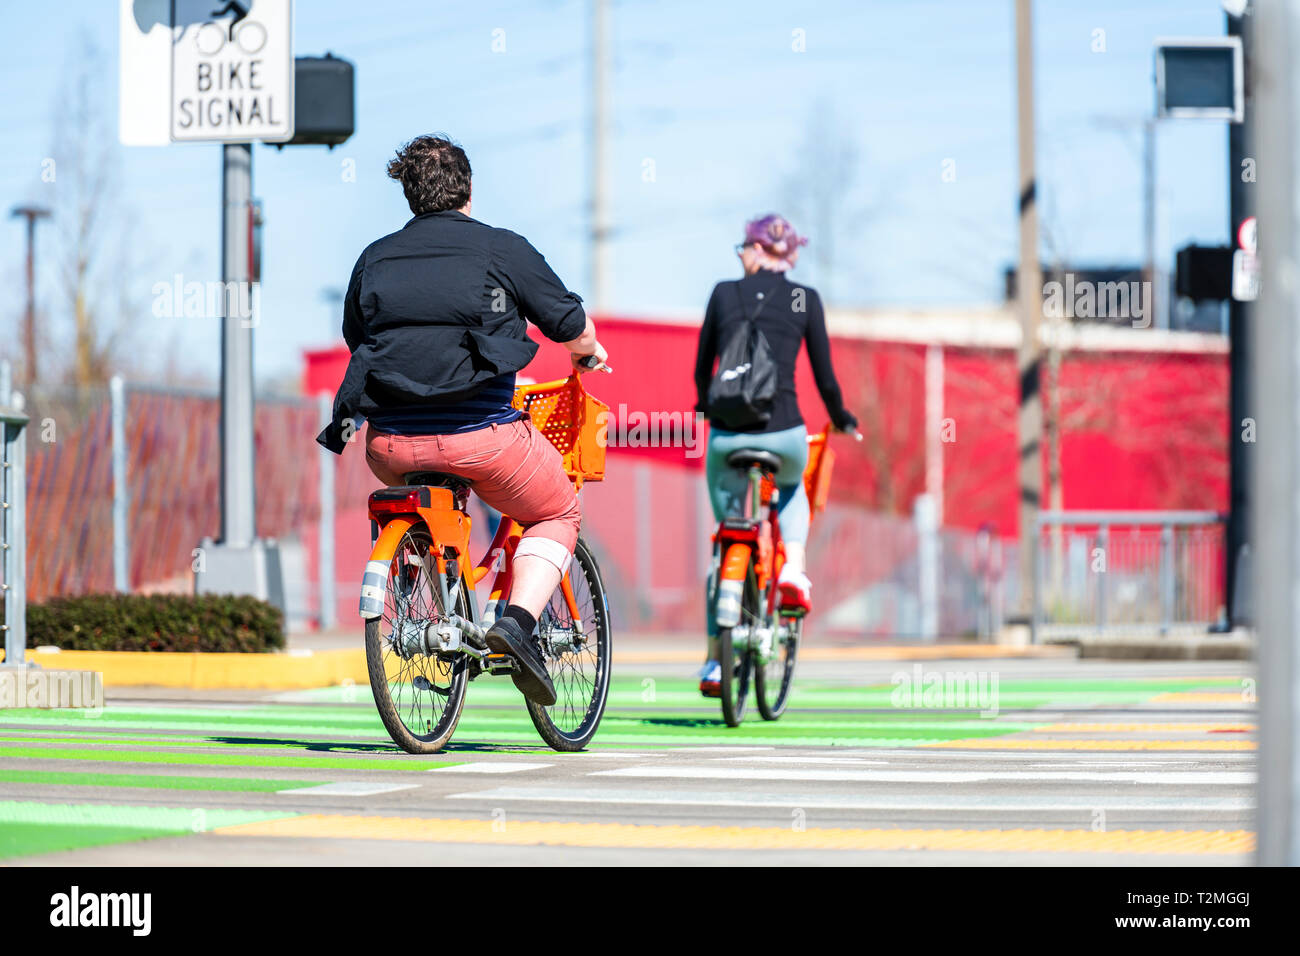 Together with beloved for walk on bicycles to sweat practicing in fast cycling relax at wheel of a bicycle to talk combining business with pleasure le Stock Photo